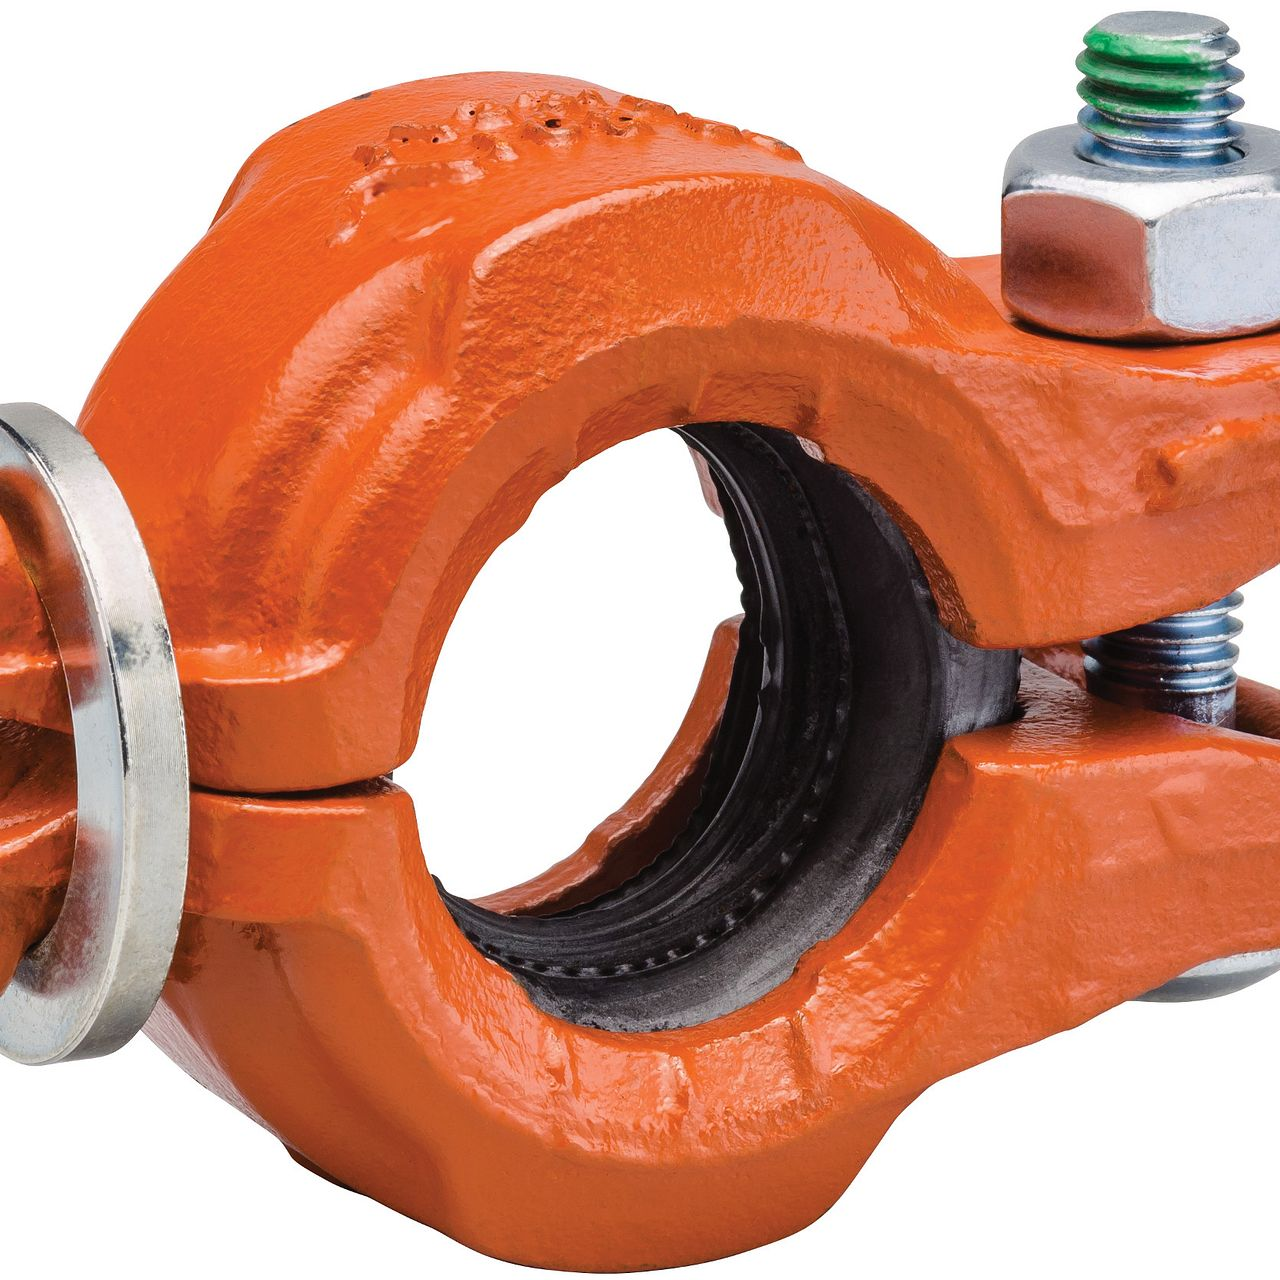 Victaulic couplings for pvc pipe